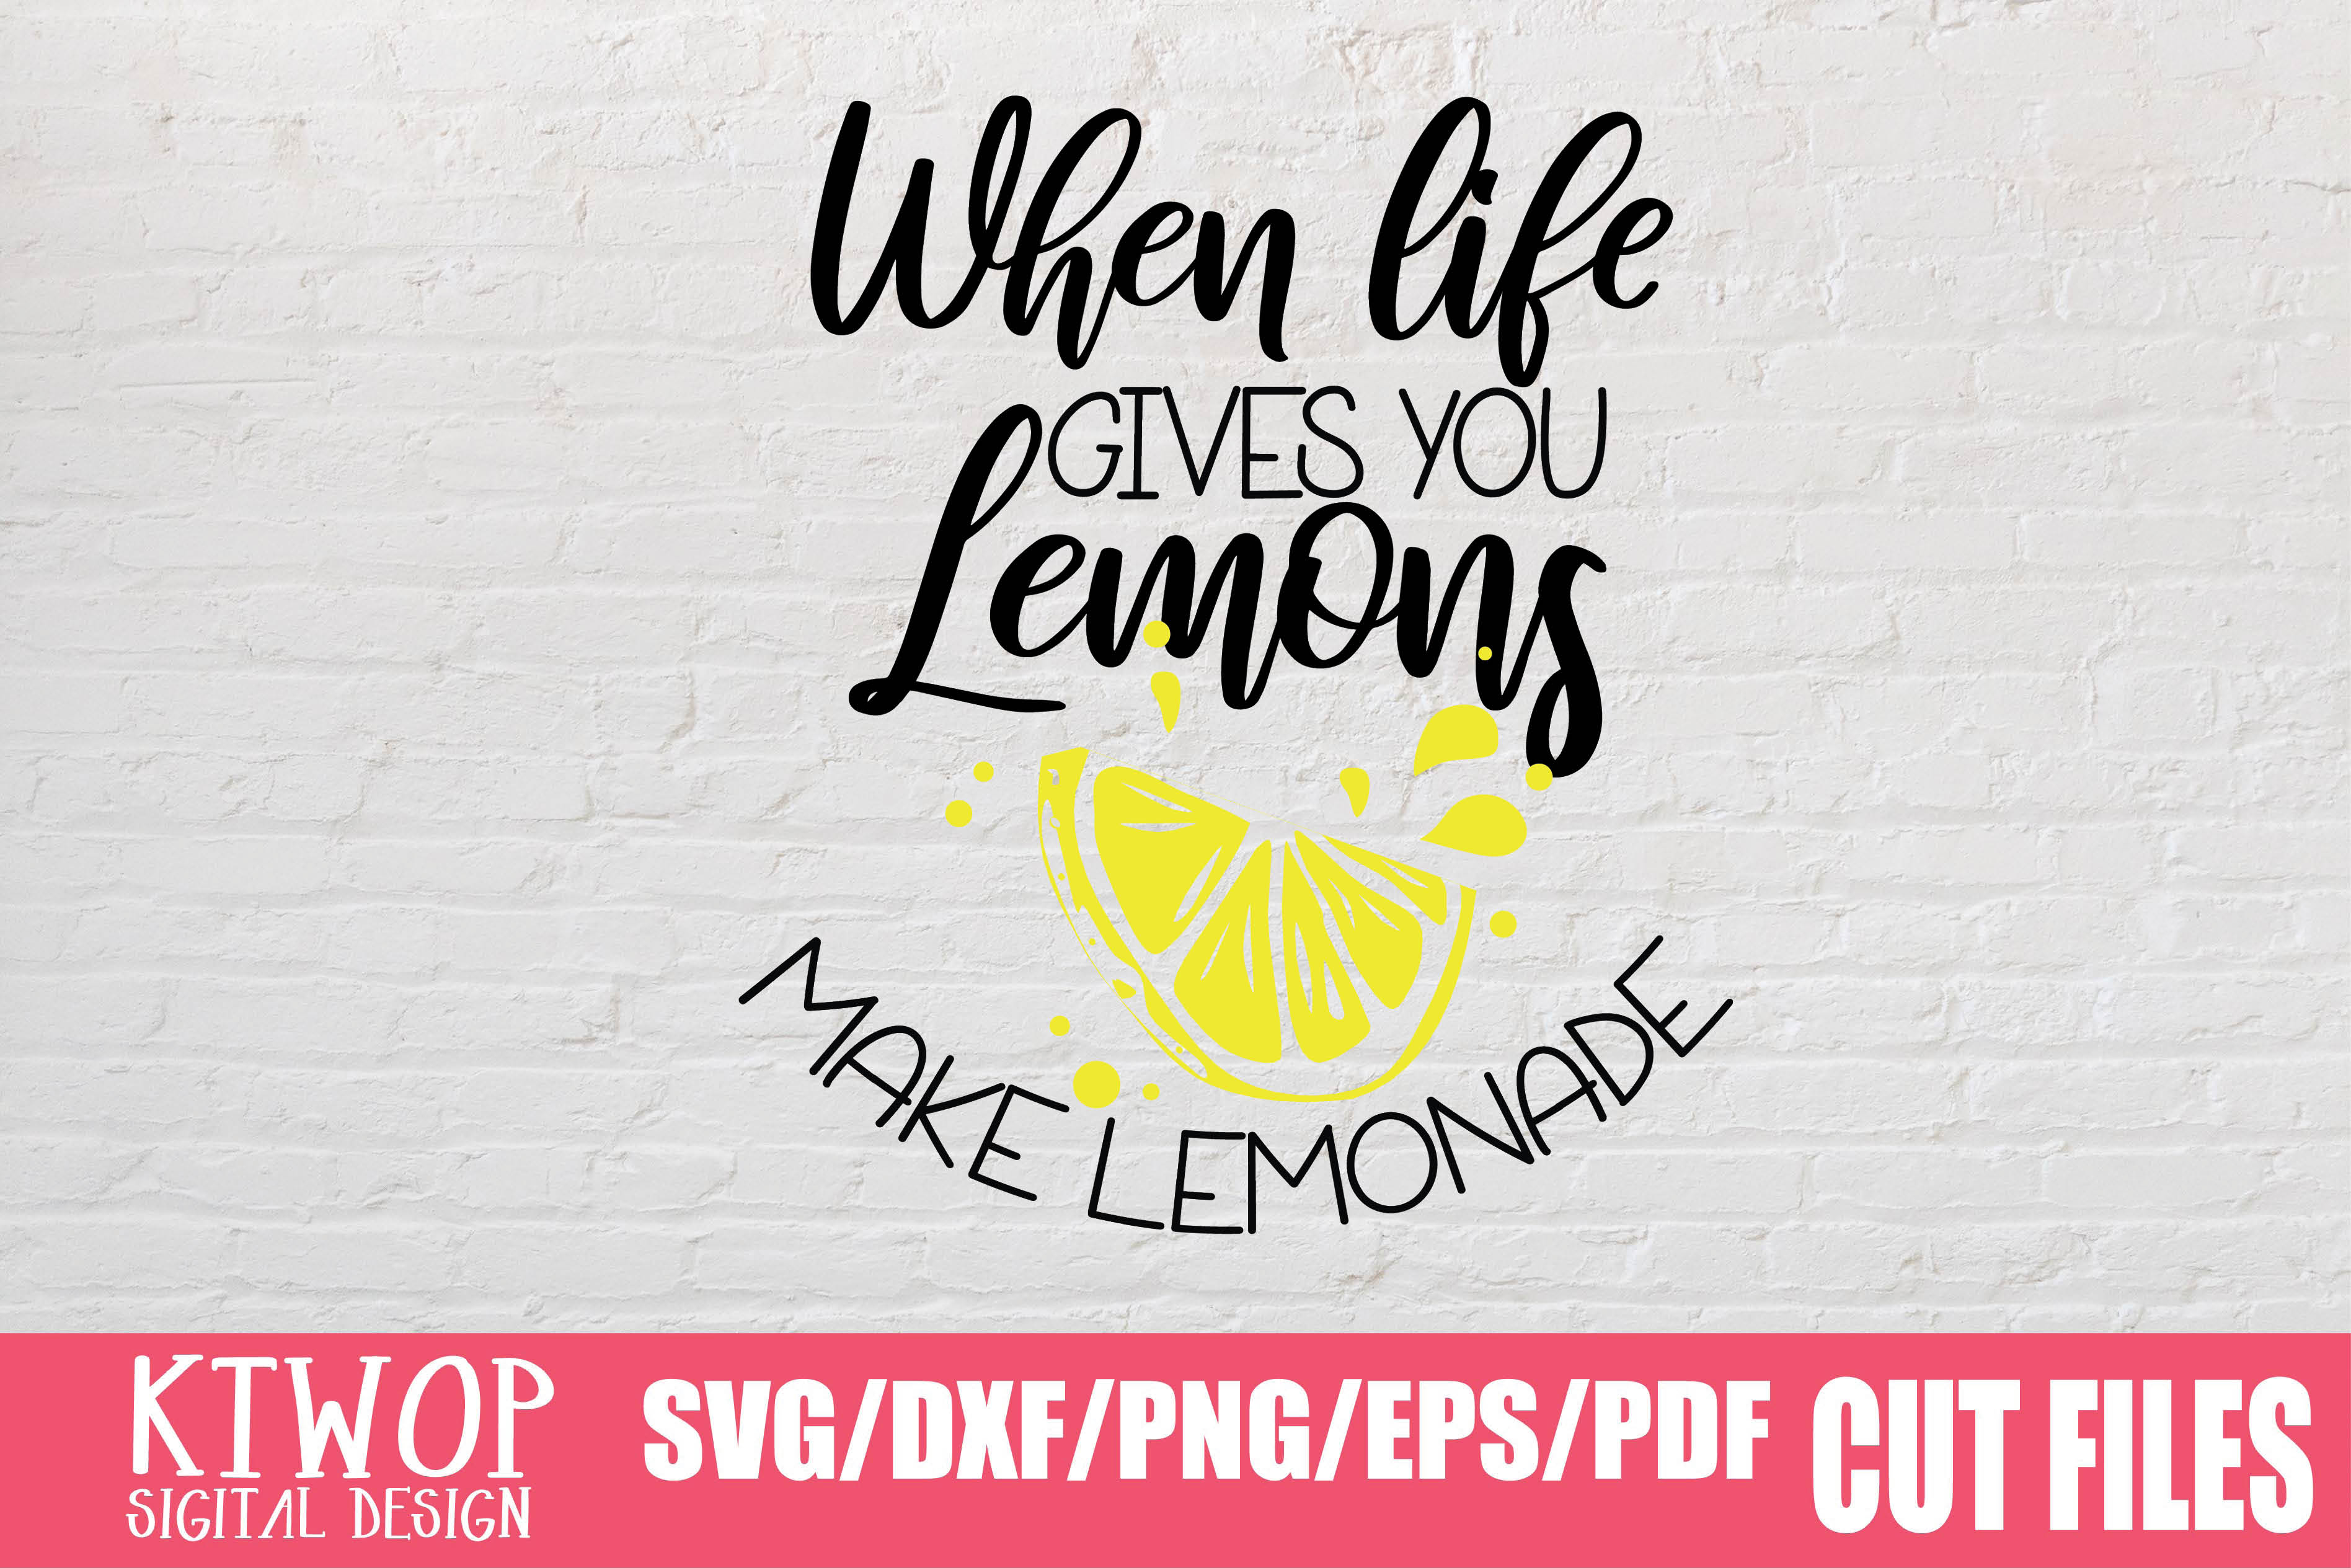 Download Free When Life Gives You Lemons Make Lemonade Graphic By Ktwop for Cricut Explore, Silhouette and other cutting machines.